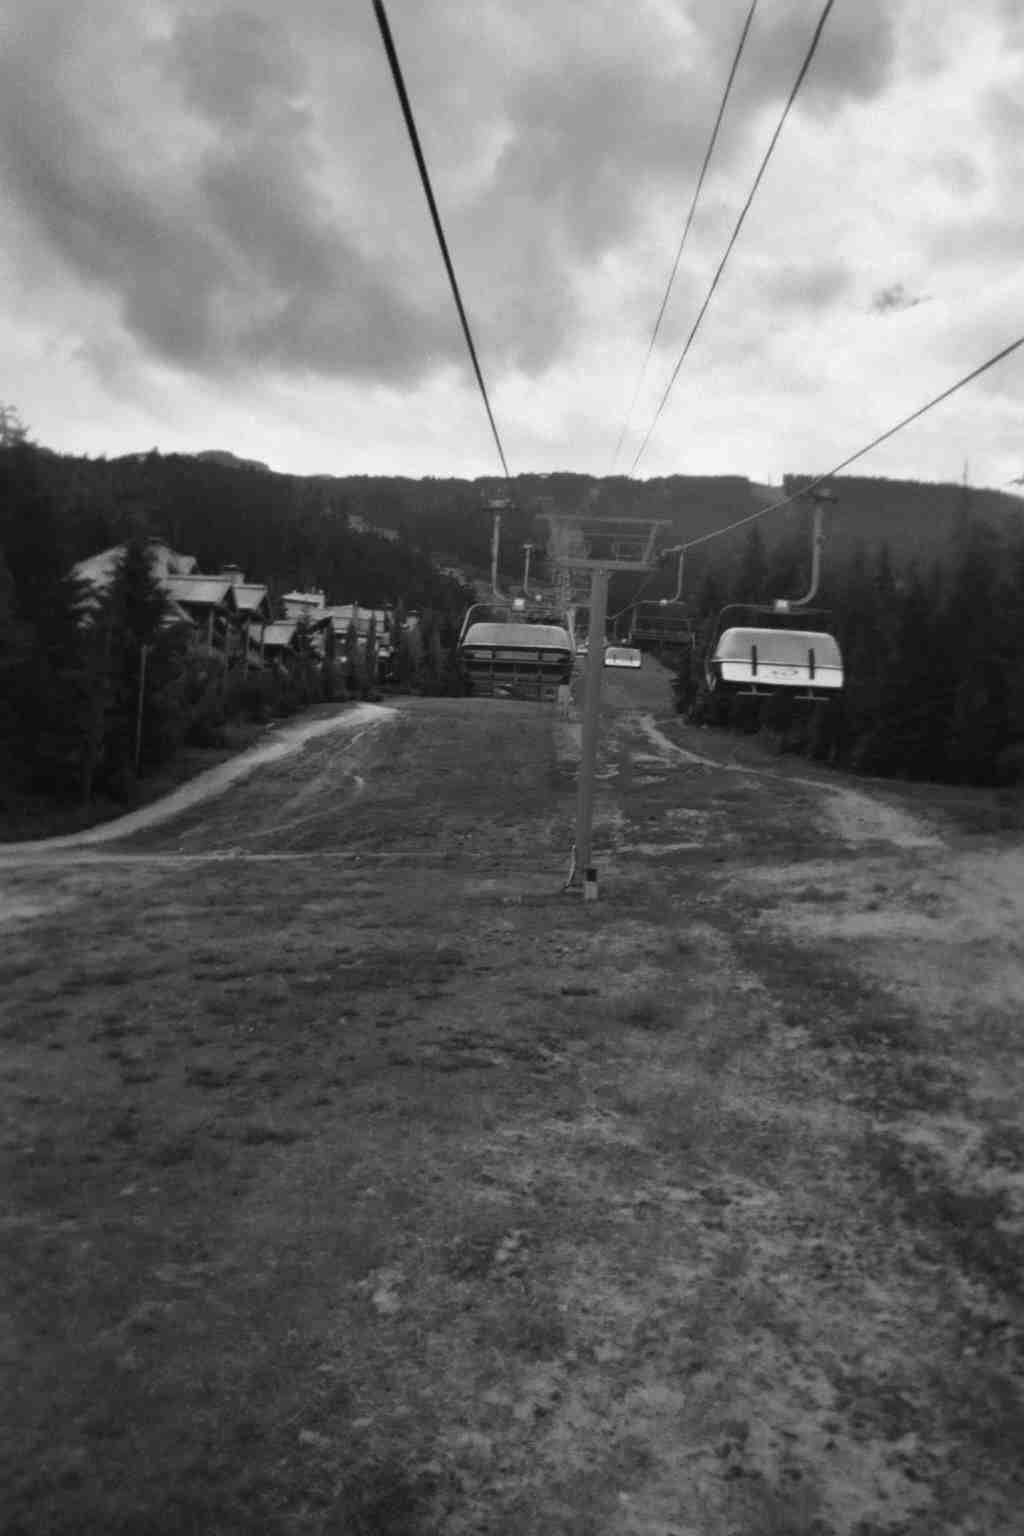 i took this pic this past summer when i was mountain biking/skiing